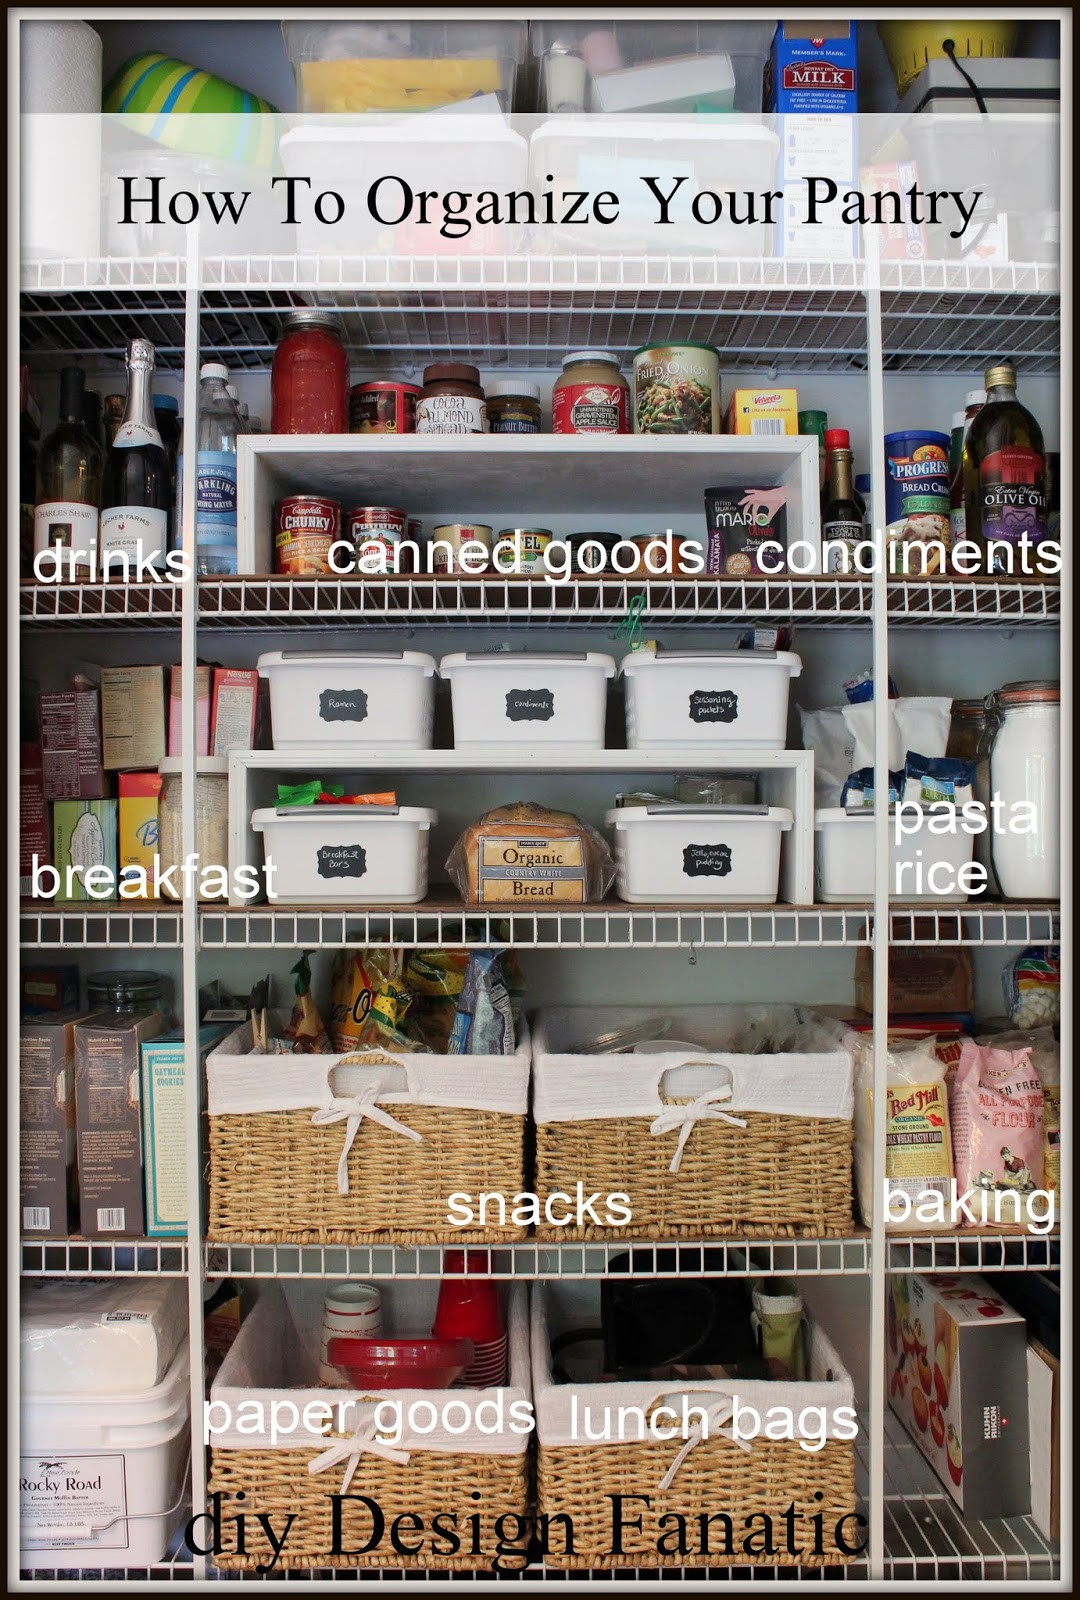 Best ideas about Organizing A Pantry . Save or Pin How To Organize A Pantry Now.